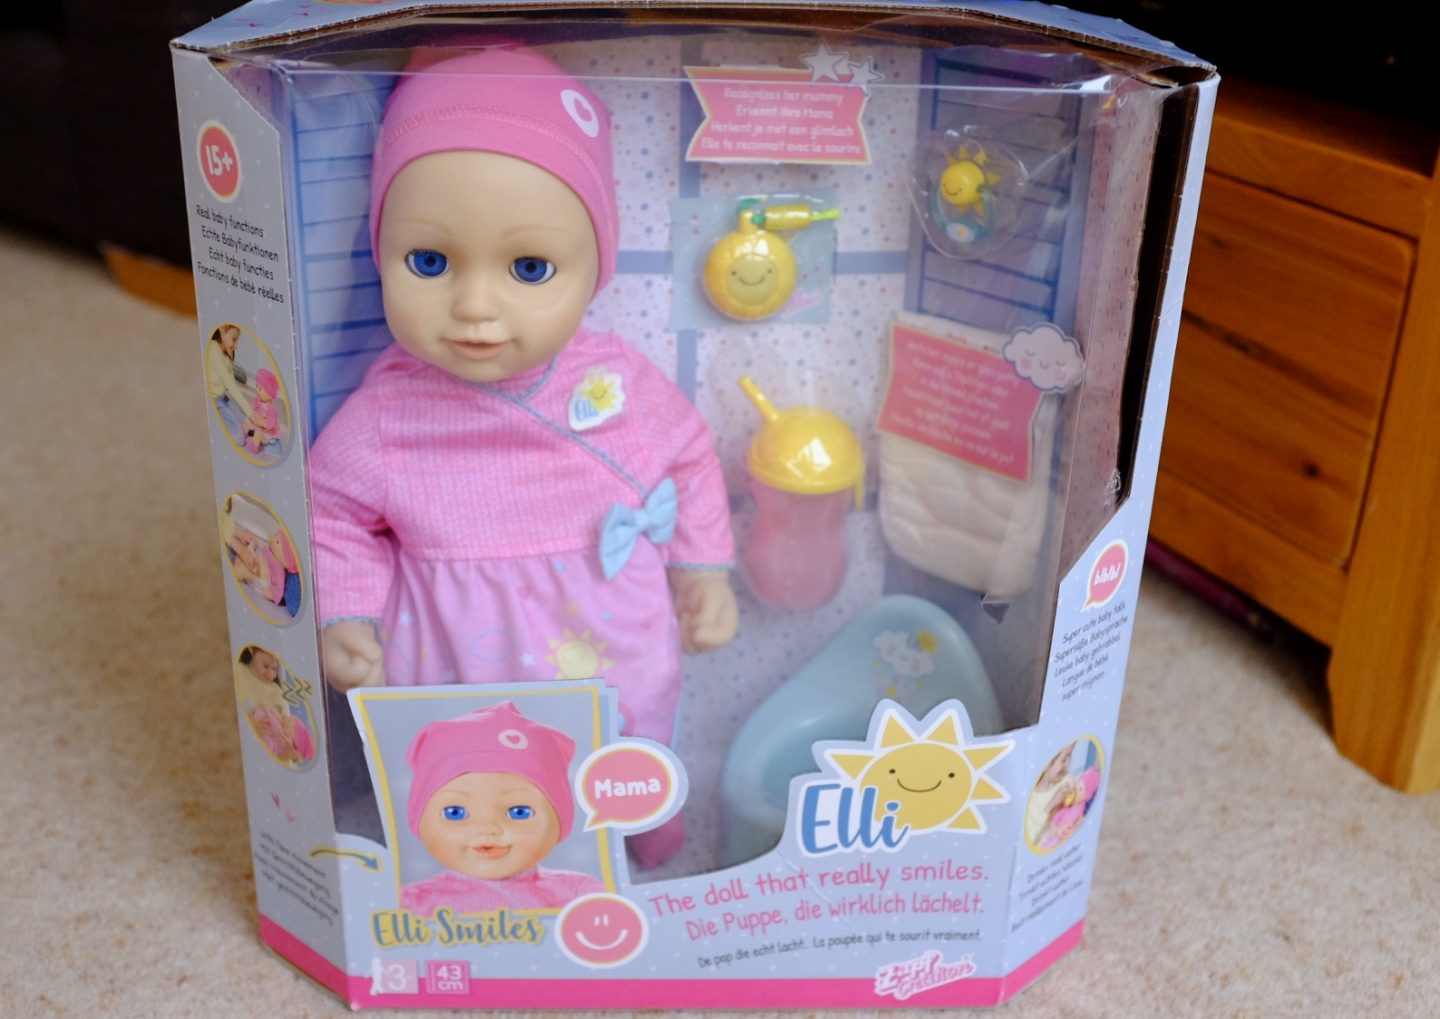 Elli Smiles doll in the box